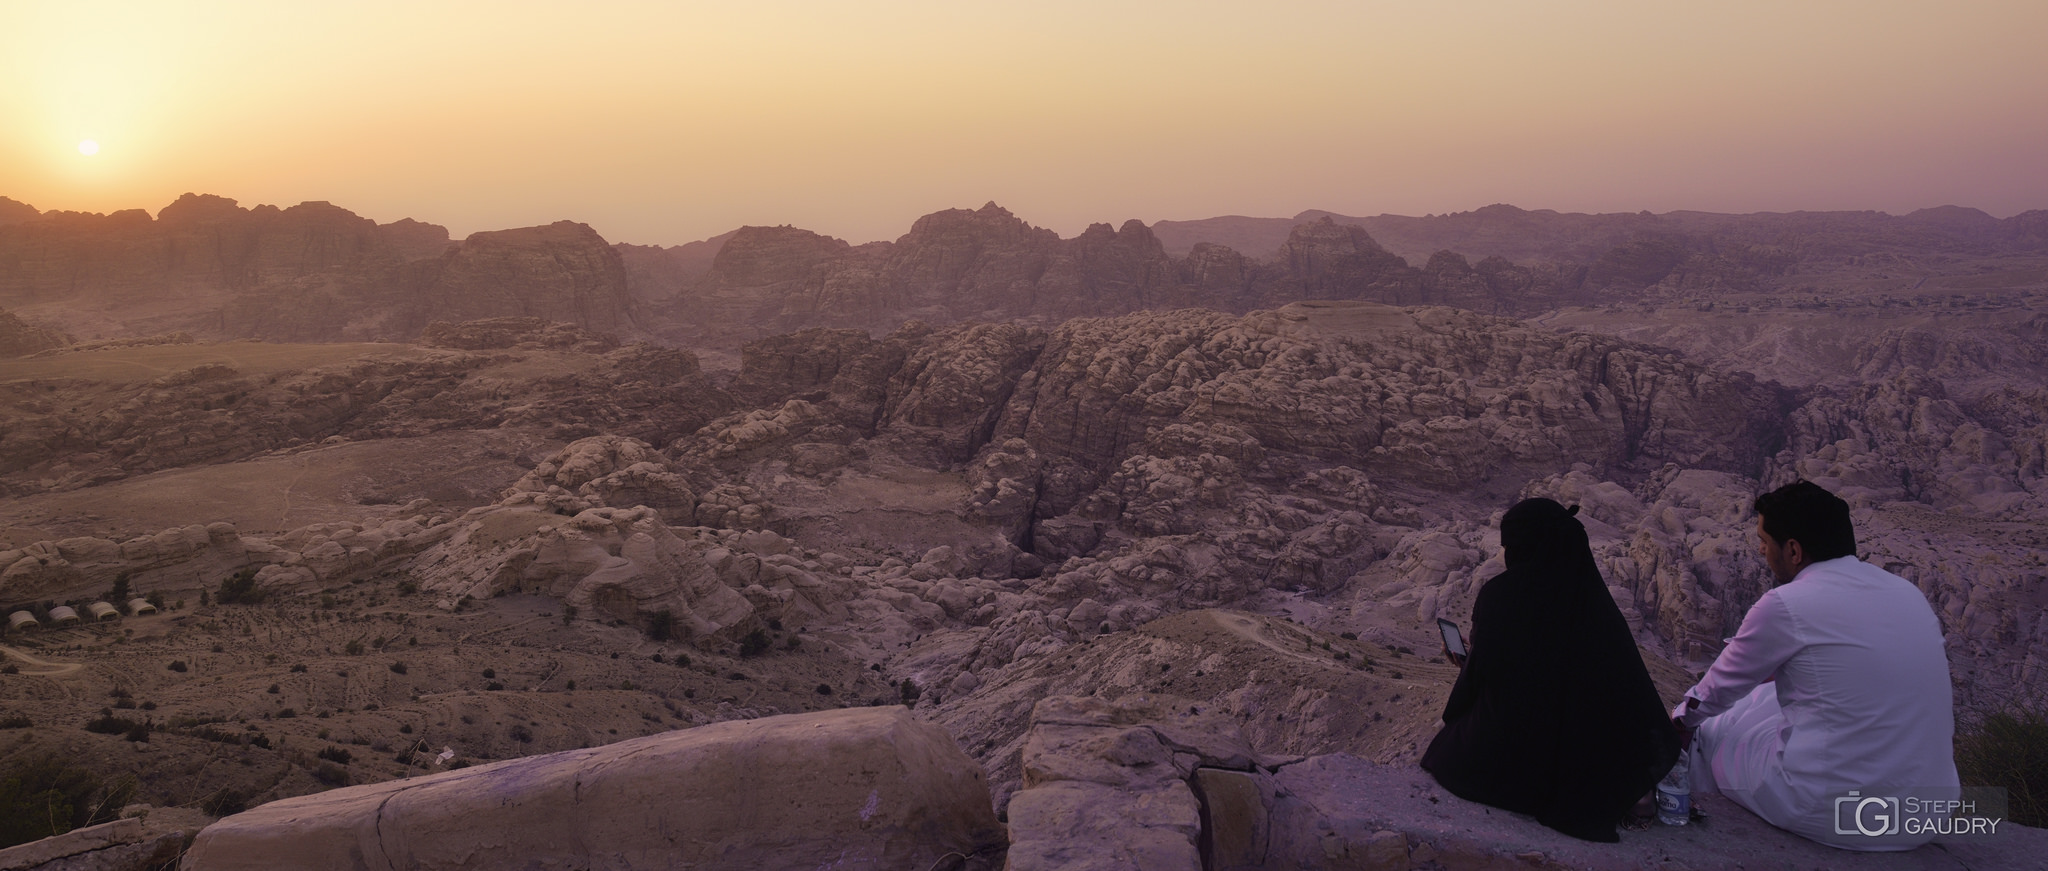 Sunset in the mountains above Petra - 2017_09_04_174902